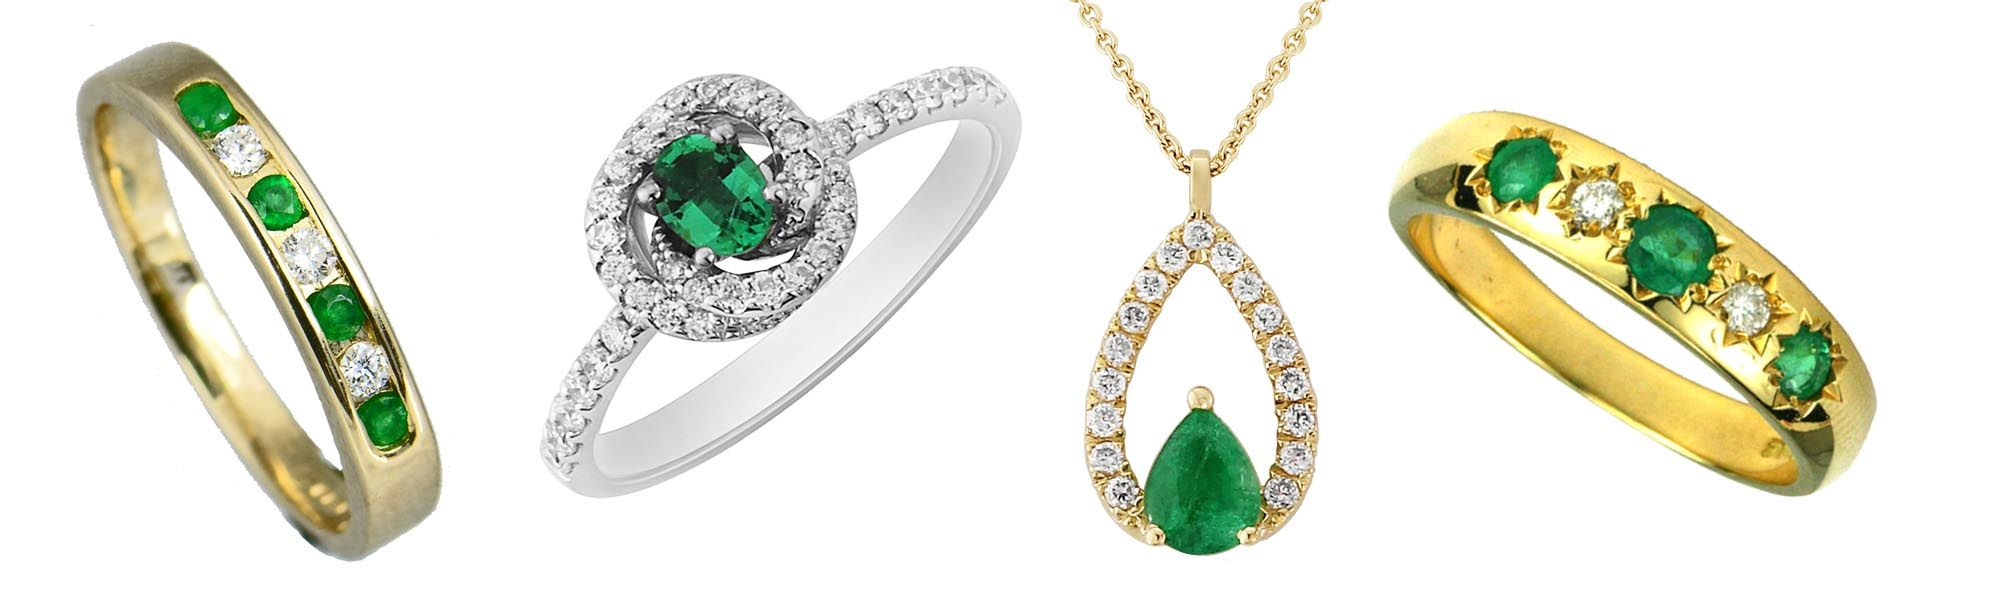 Emerald from Sally Thornton Jewellery blog at Thorntons Jewellers Kettering